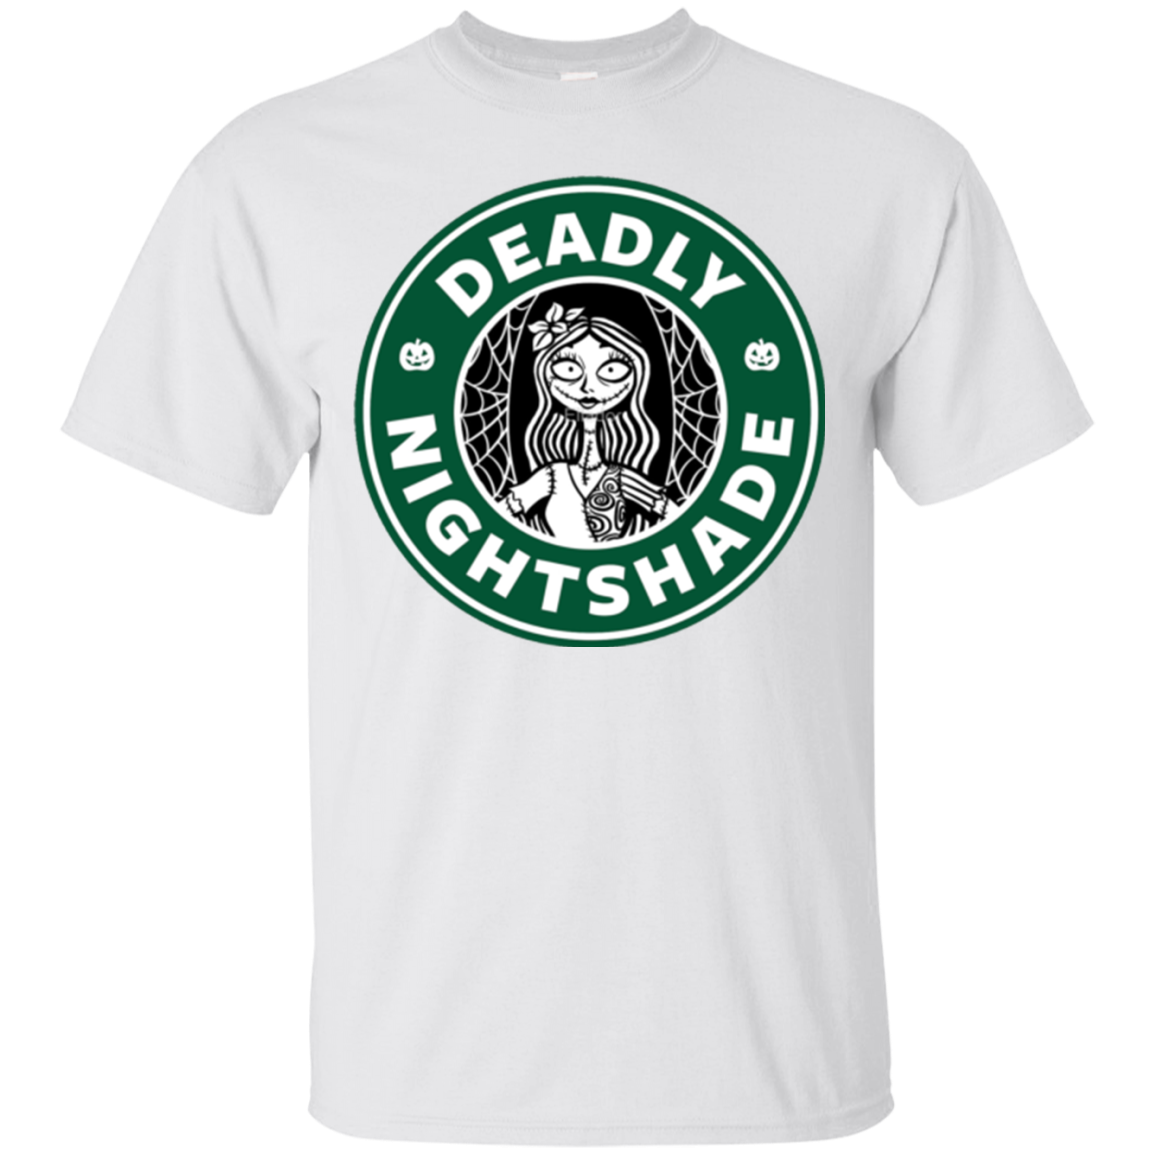 Nightmare before christmas night shade labels black and white png. The starbucks halloween shirts